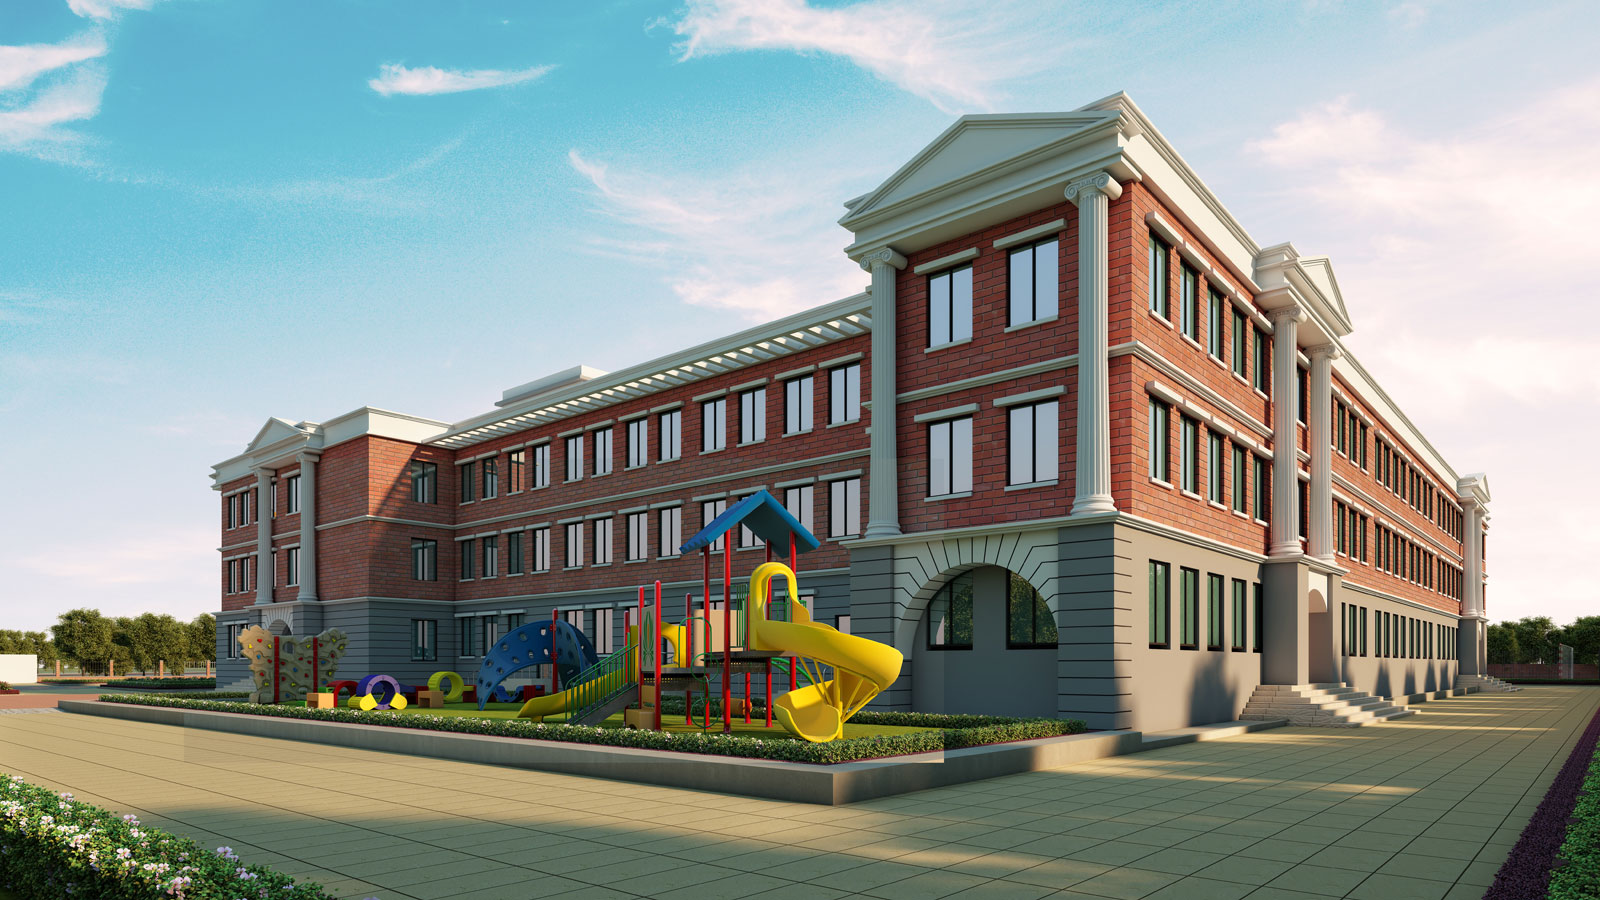 BEST STRUCTURAL CONSULTANTS AND DESIGN FOR SCHOOL BUILDINGS IN INDIA